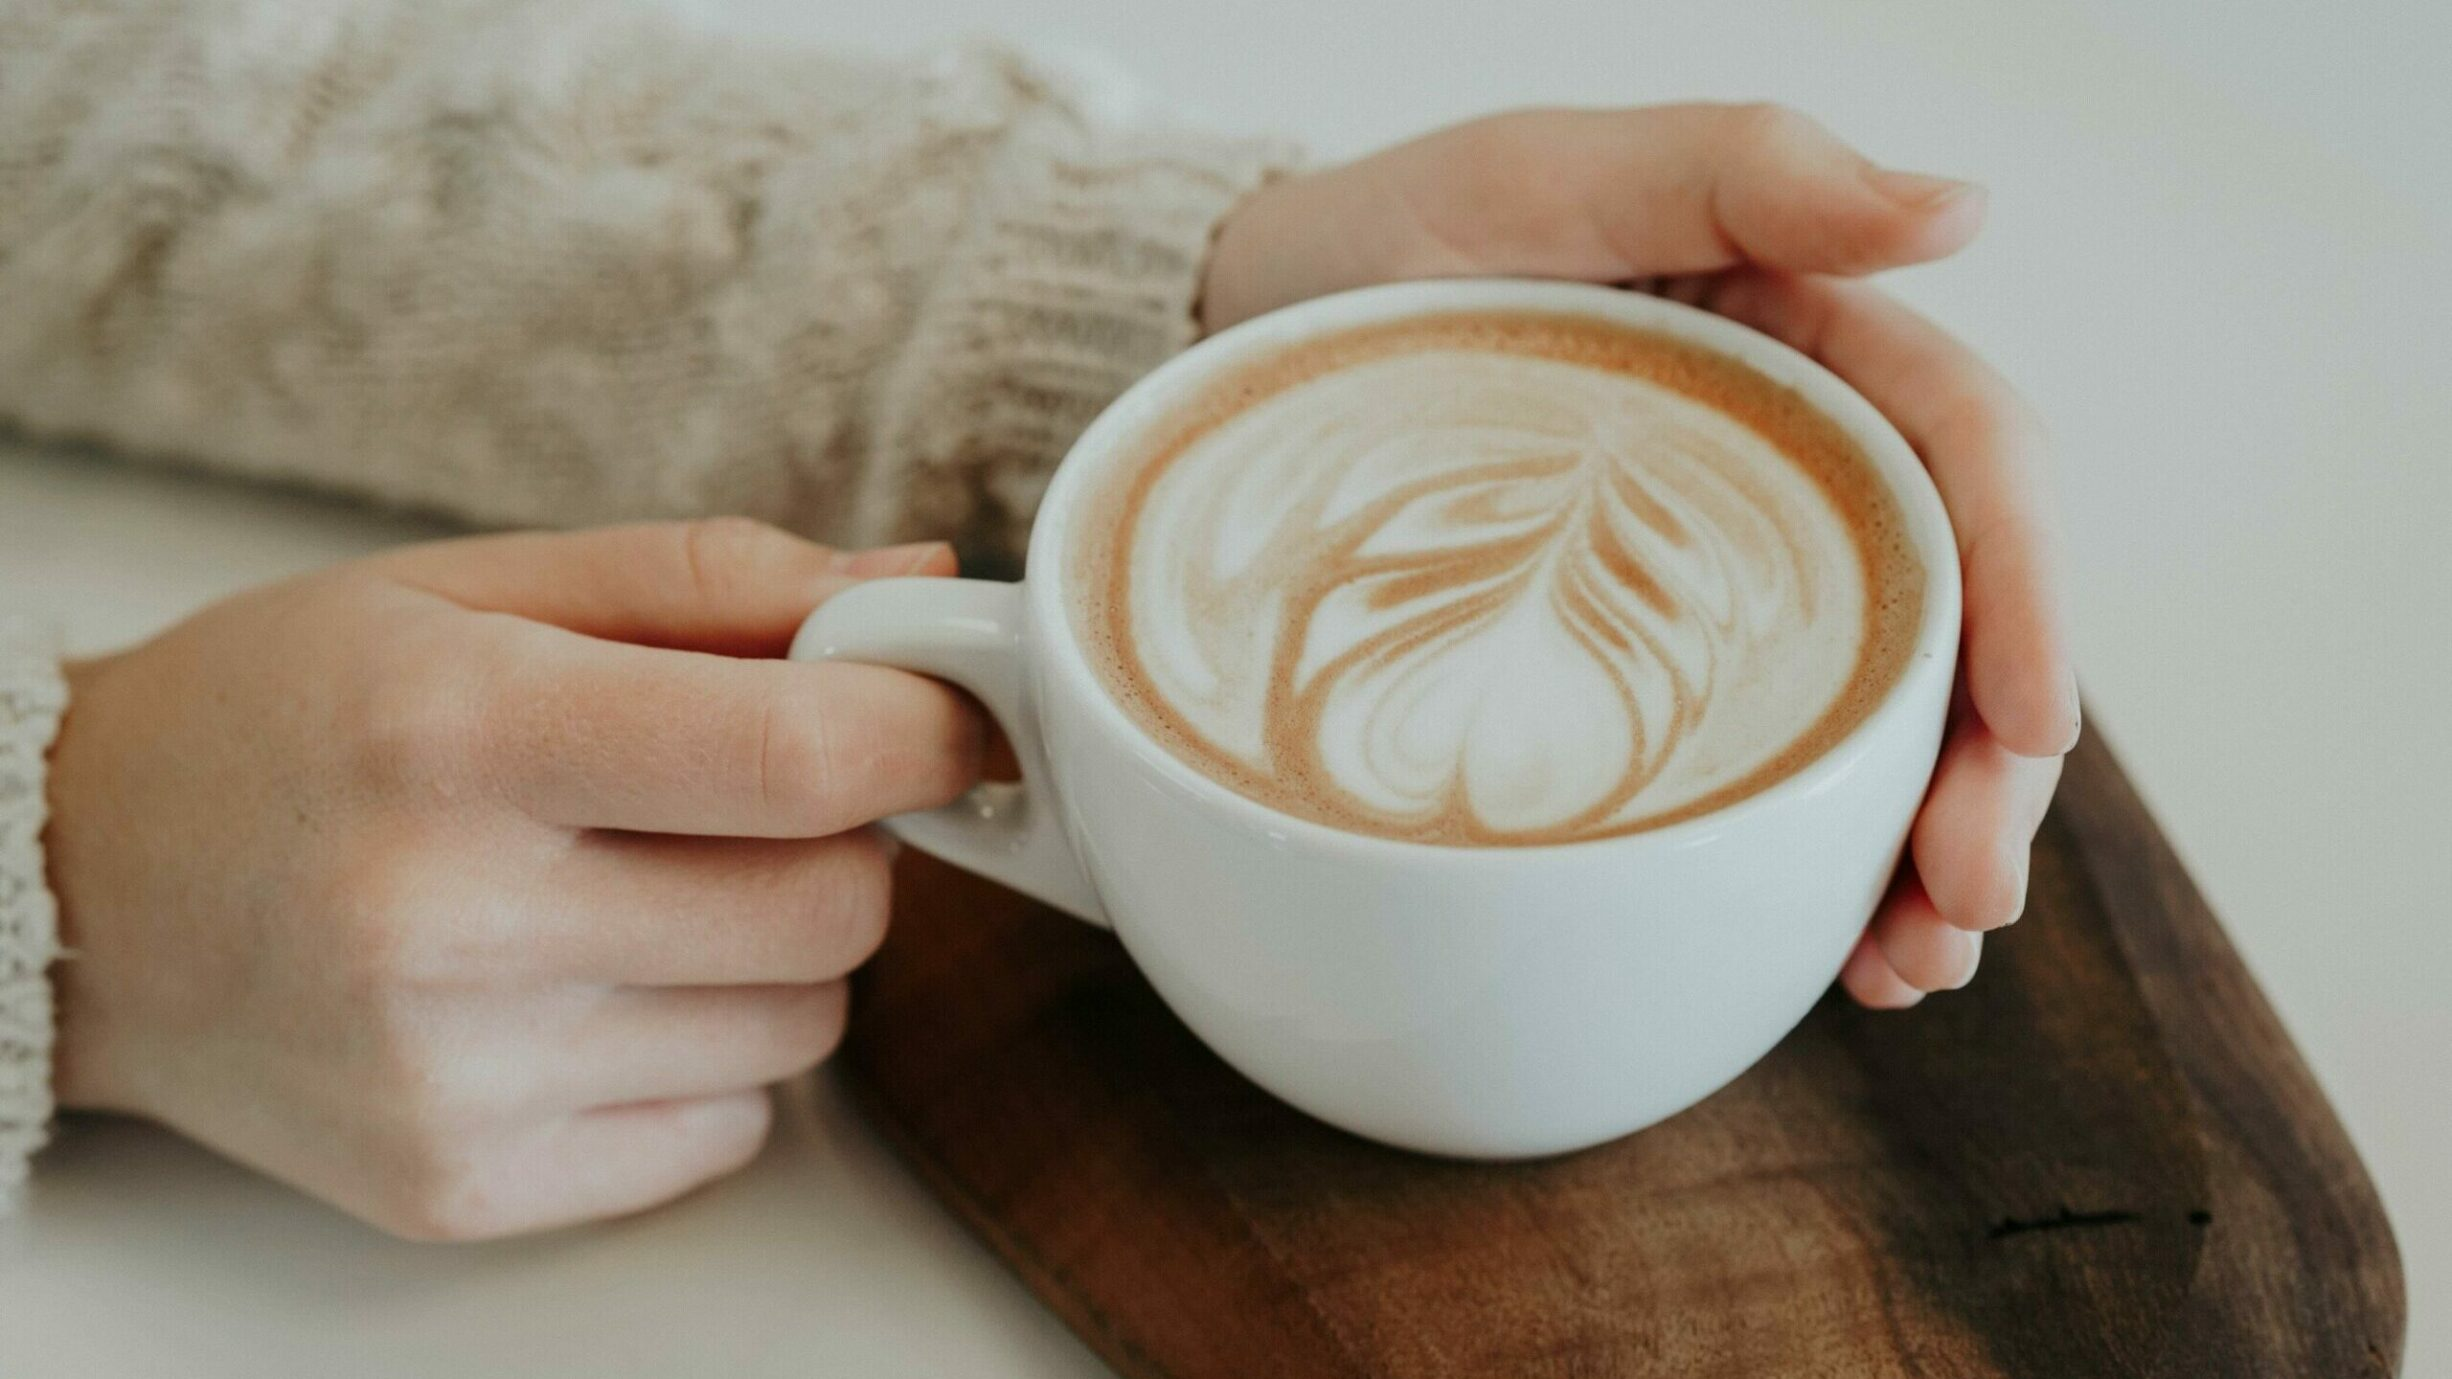 hands holding a latte in a white coffee mug